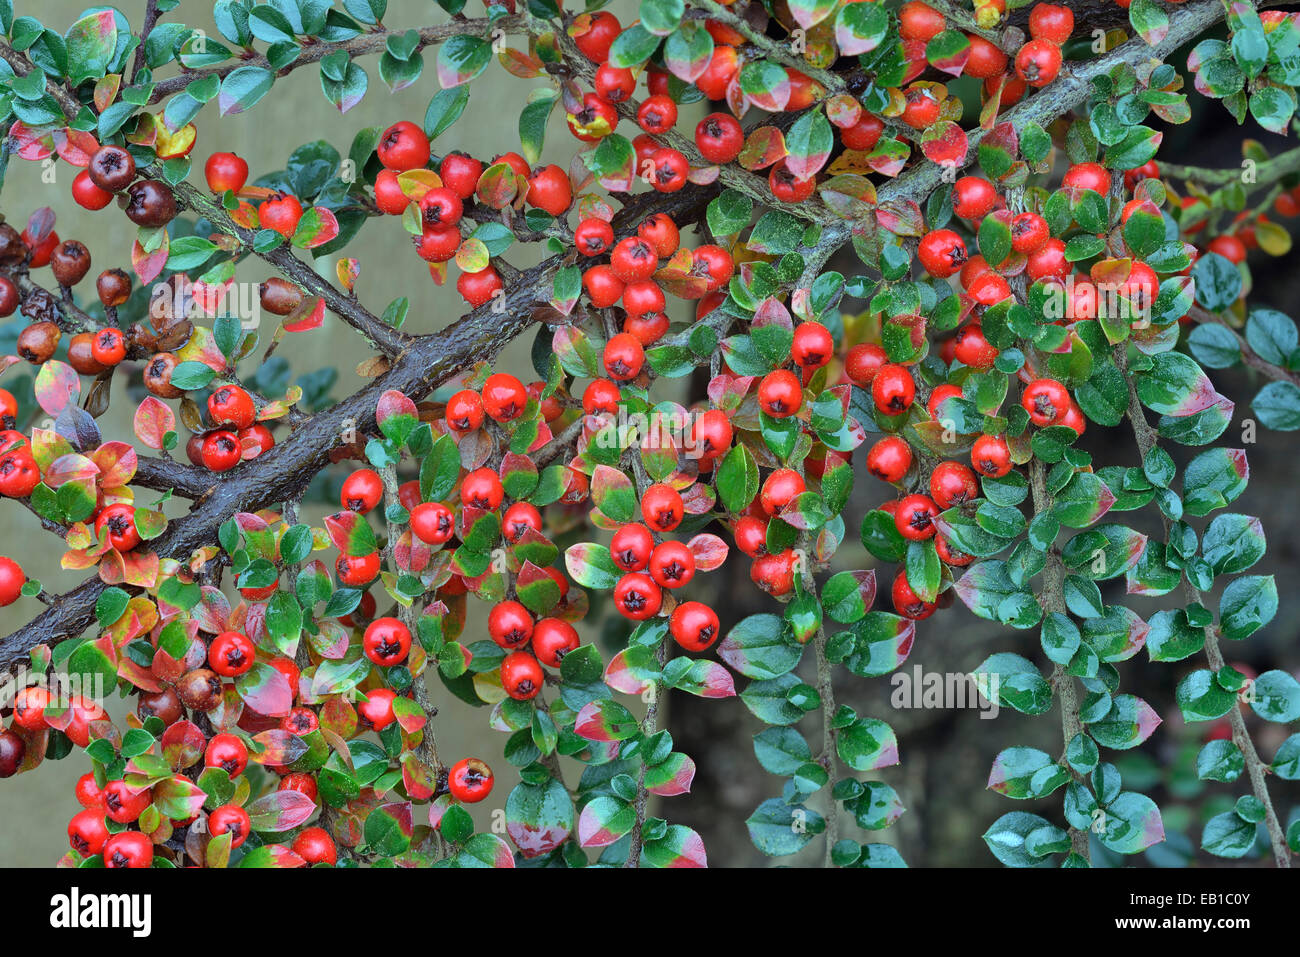 Wall Cotoneaster - Cotoneaster horizontalis Garden Shrub with Red Berries - Stock Image